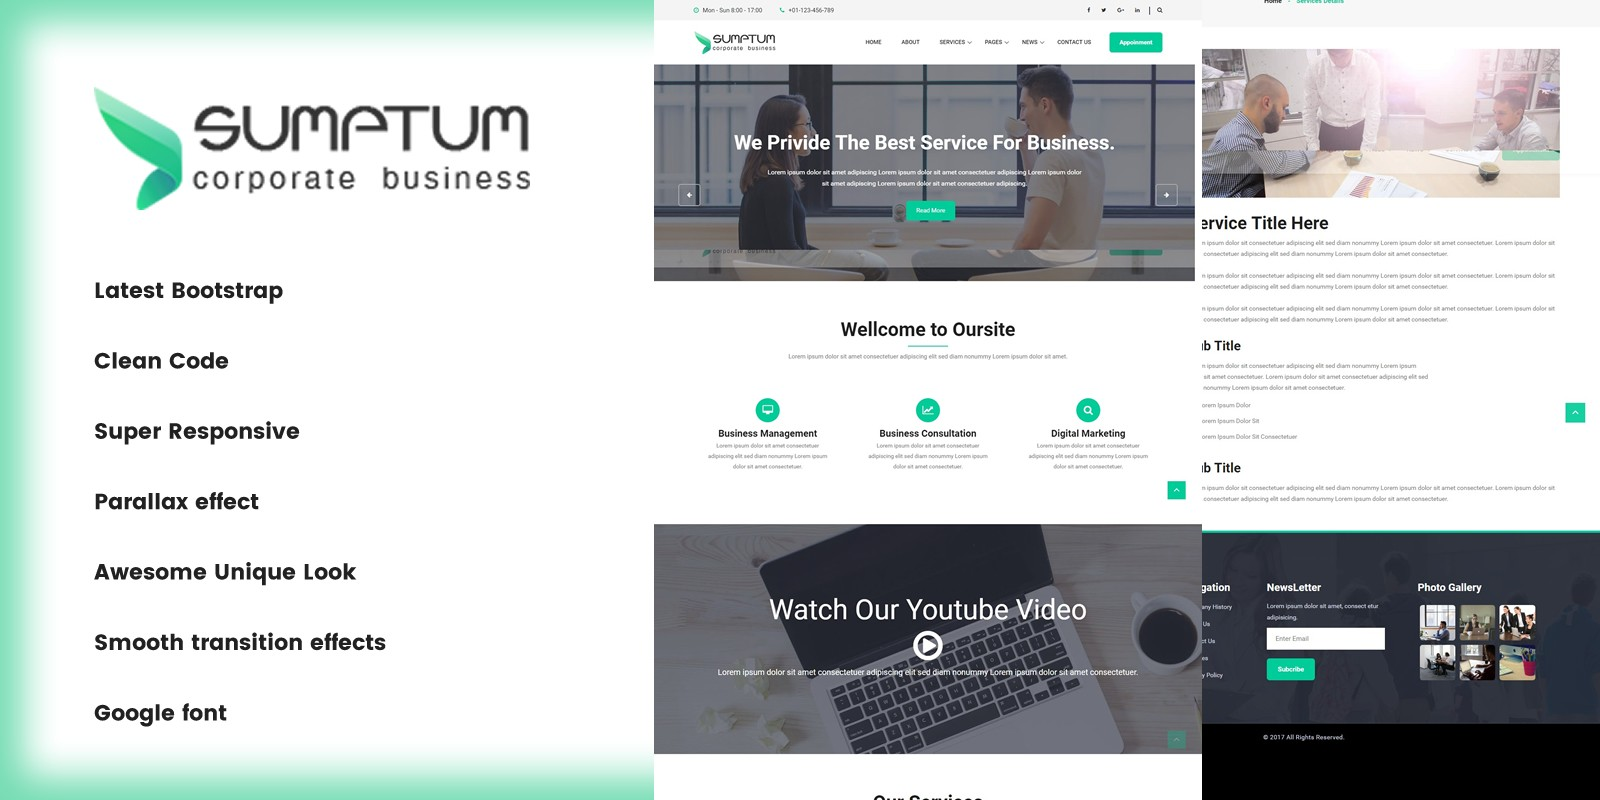 Sumptum - Business and Professional HTML Template.